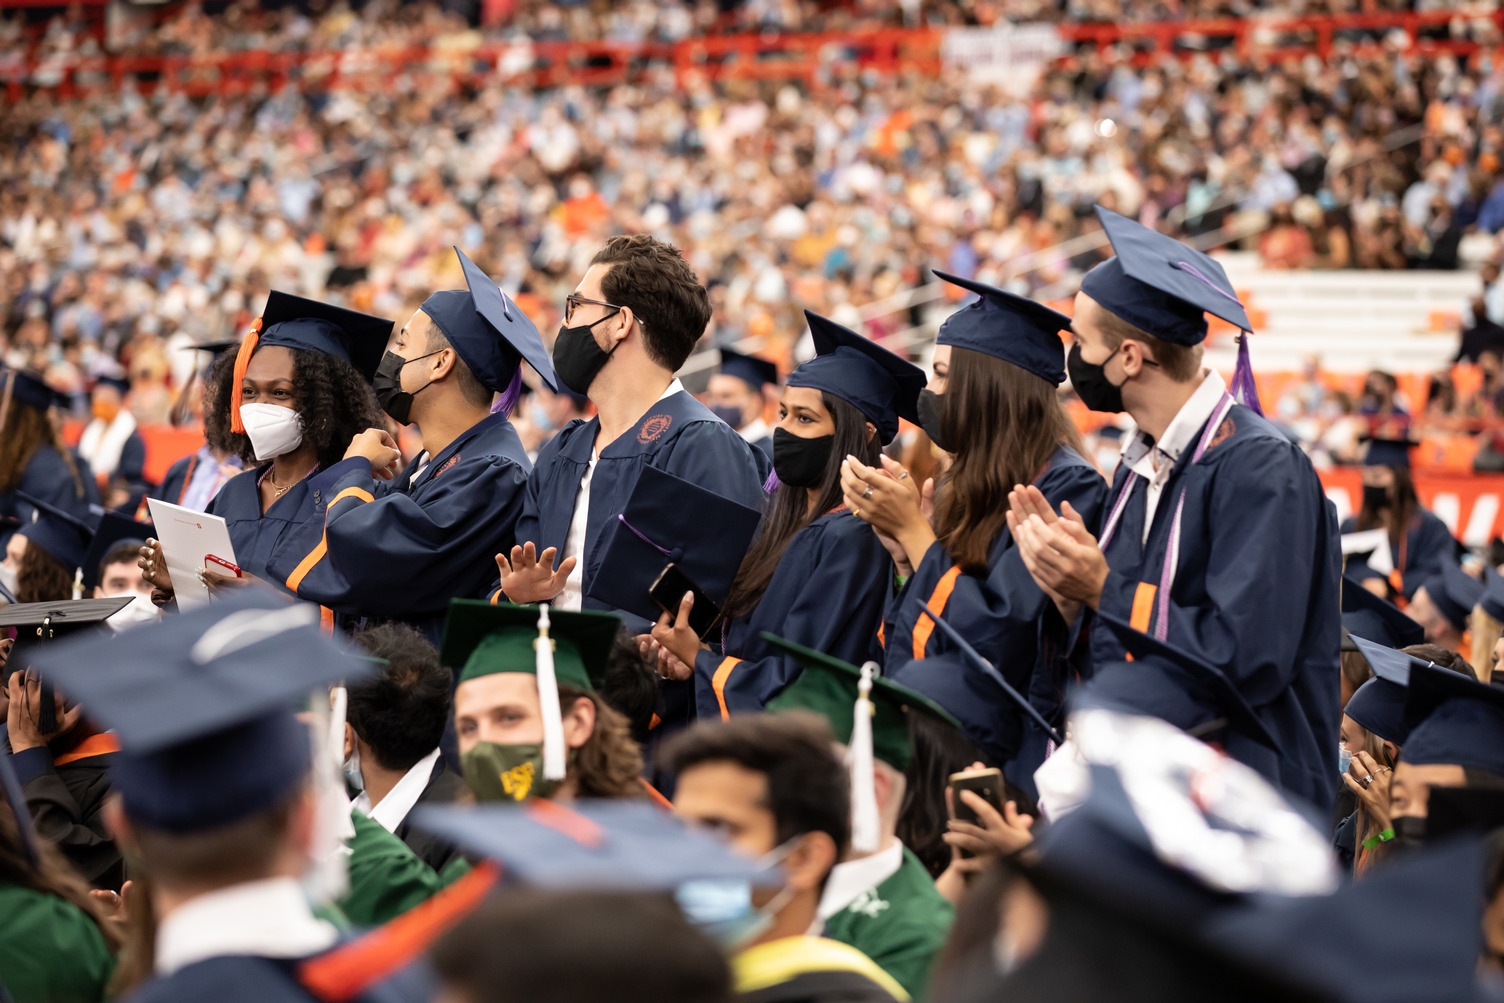 crowd of people with several standing and clapping at Commencement 2020